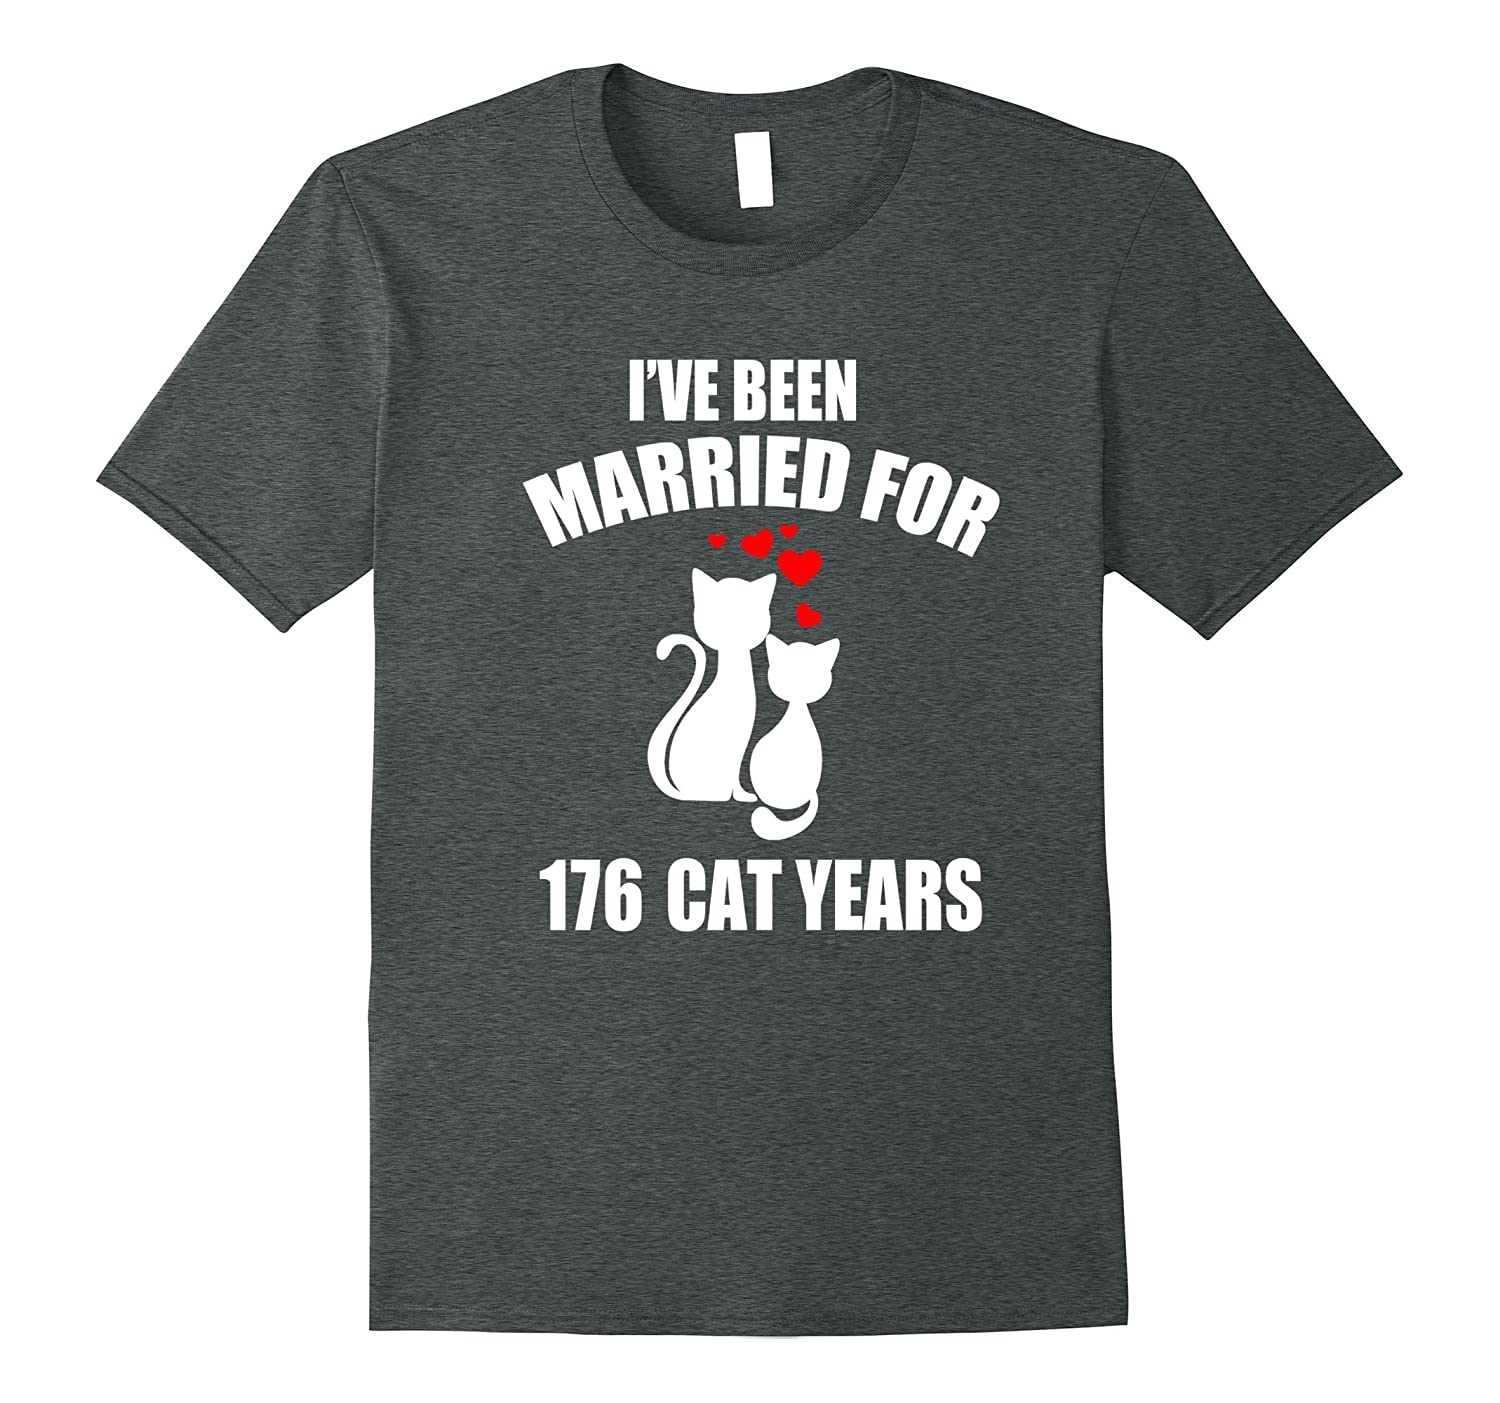 40th Wedding Anniversary T Shirt 176 Cat Years Gift Teevkd Teevkd